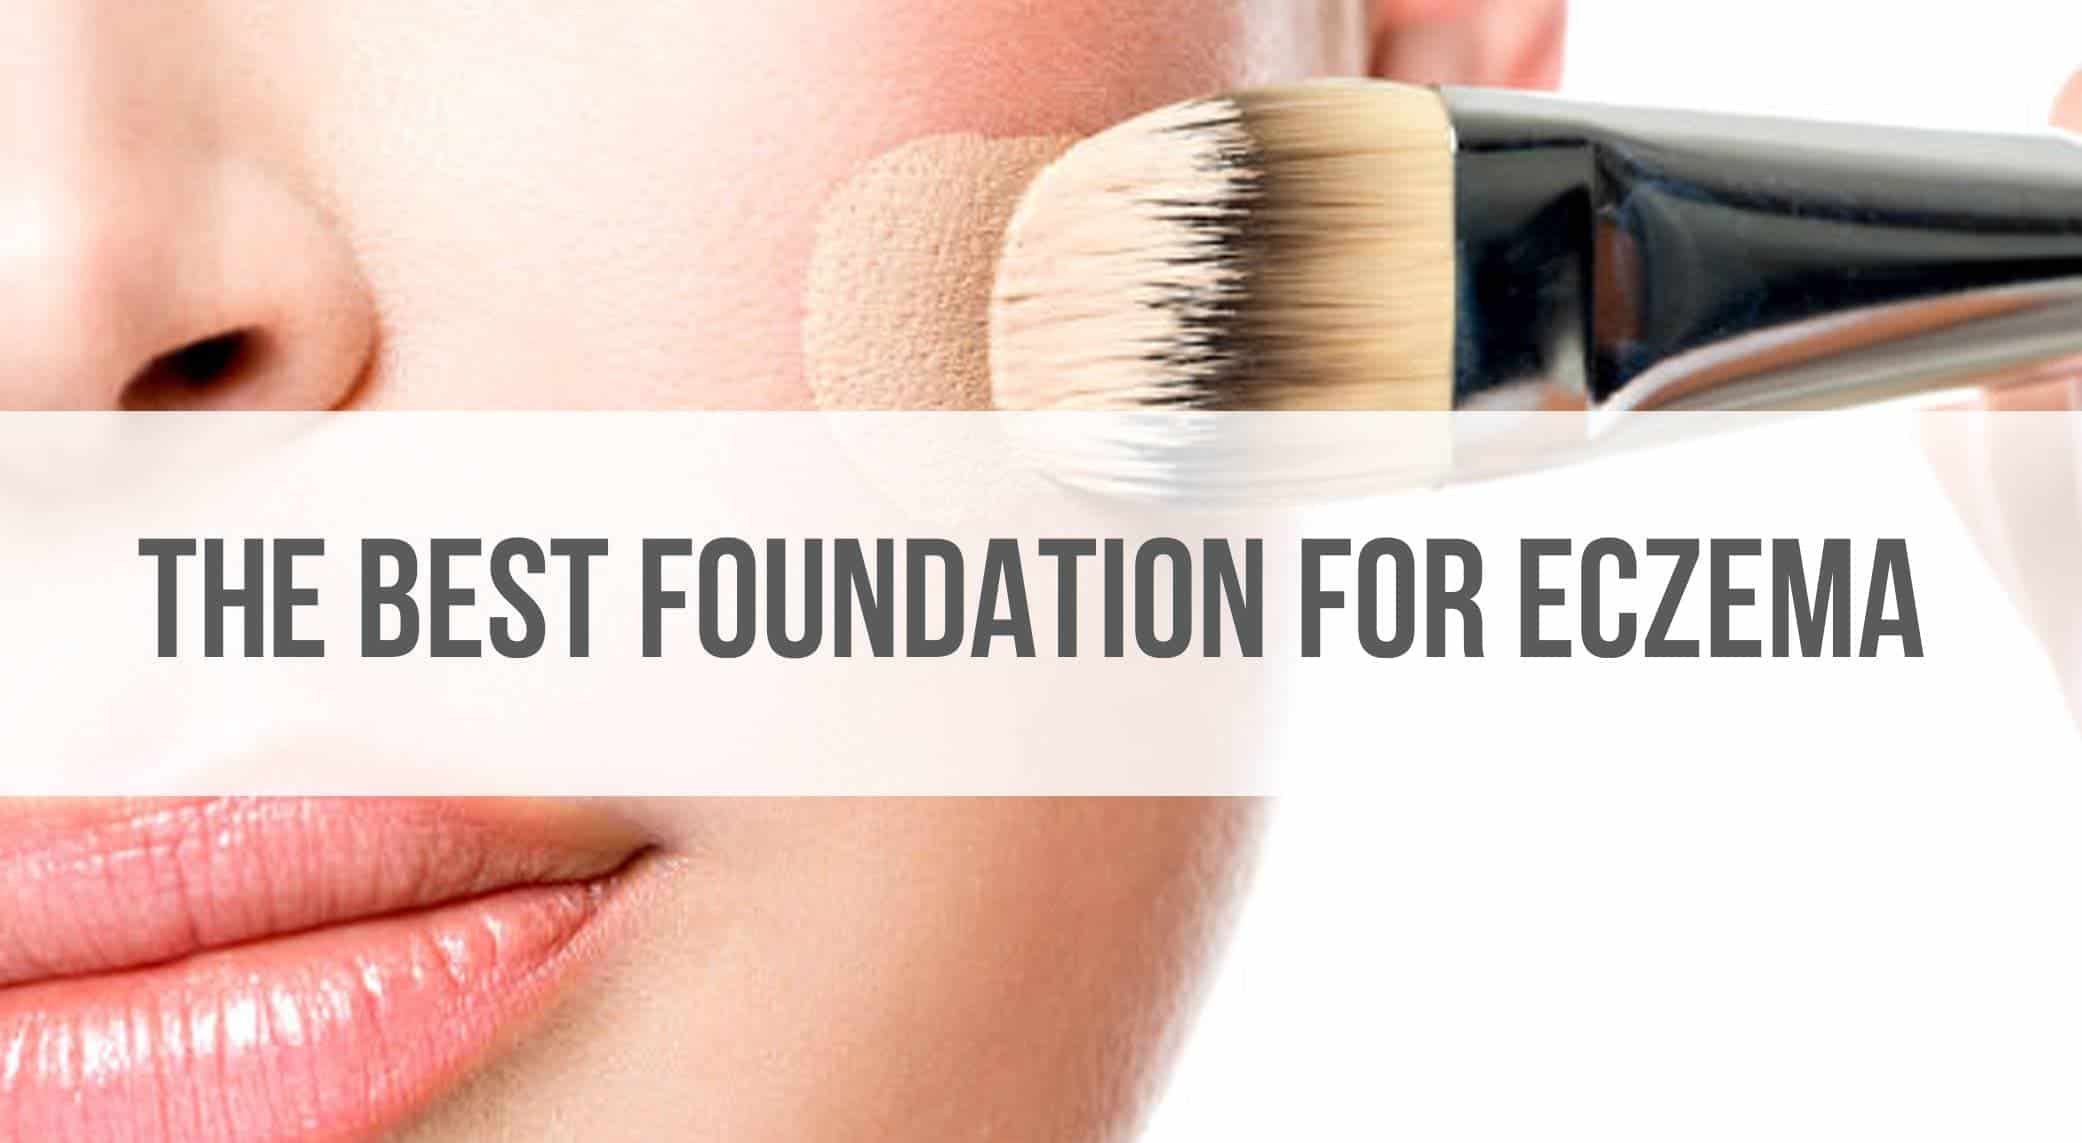 The Best Foundation for Eczema – 2021 Reviews and Top Picks